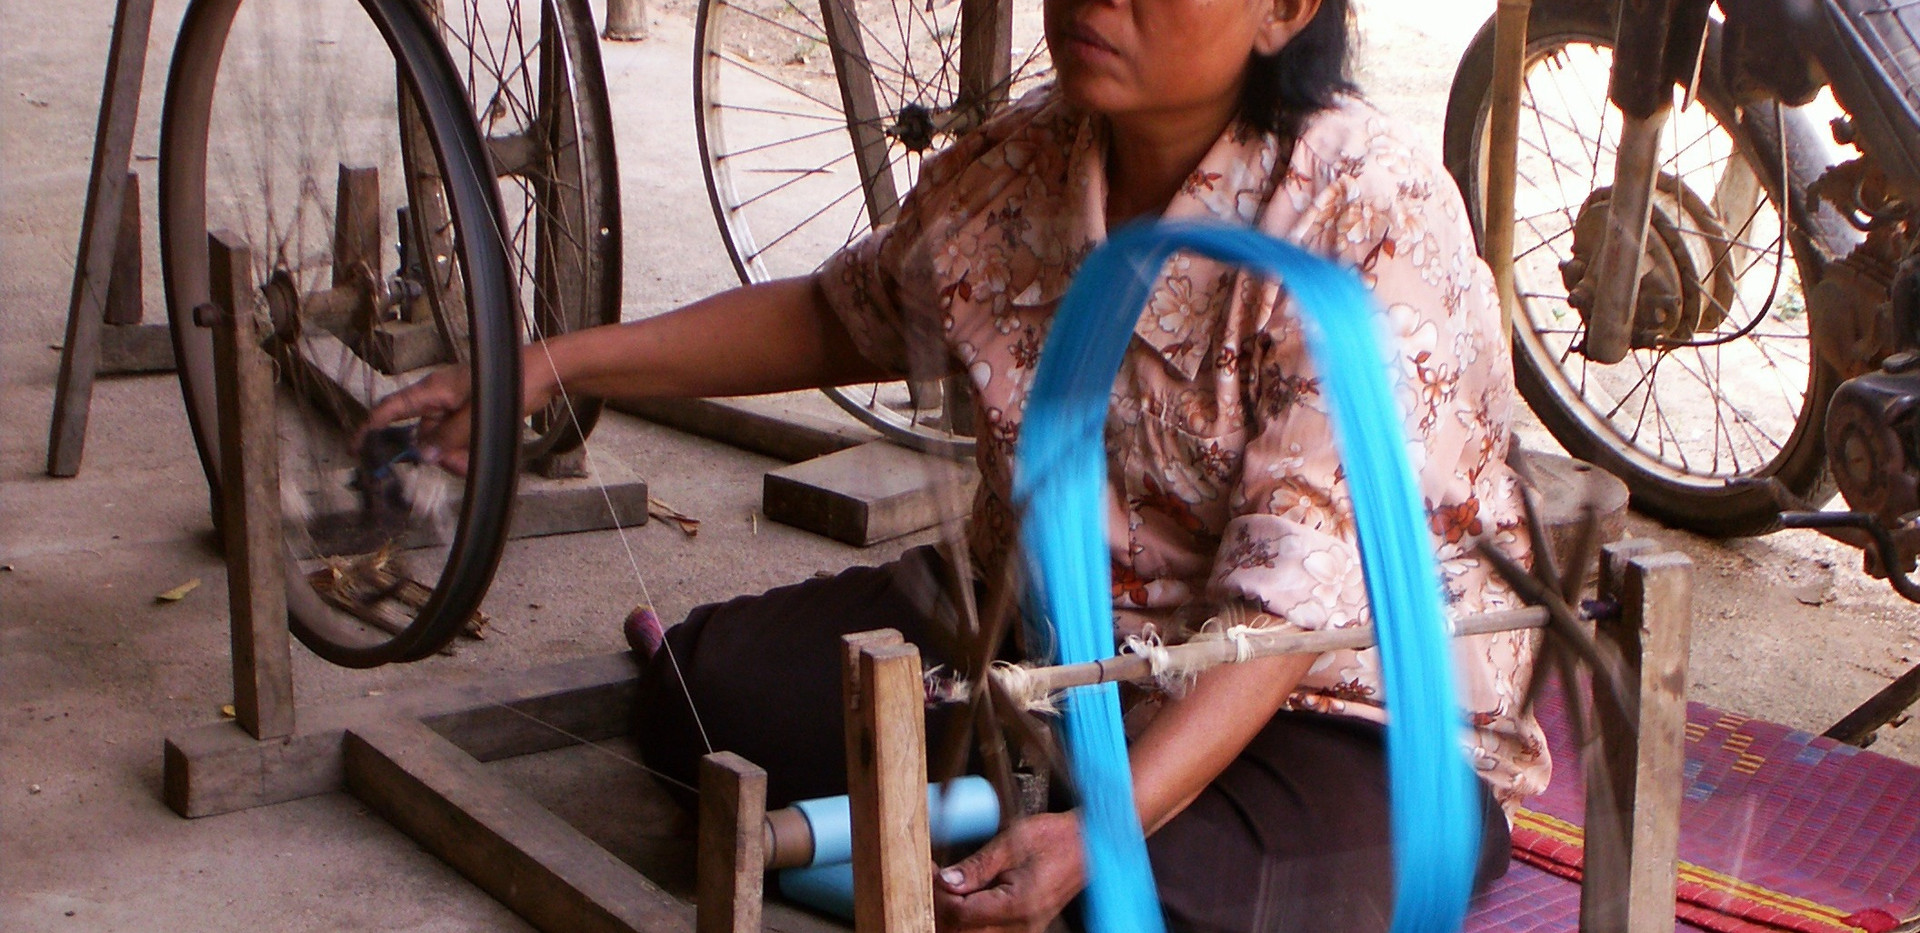 Thread is spun before weaving